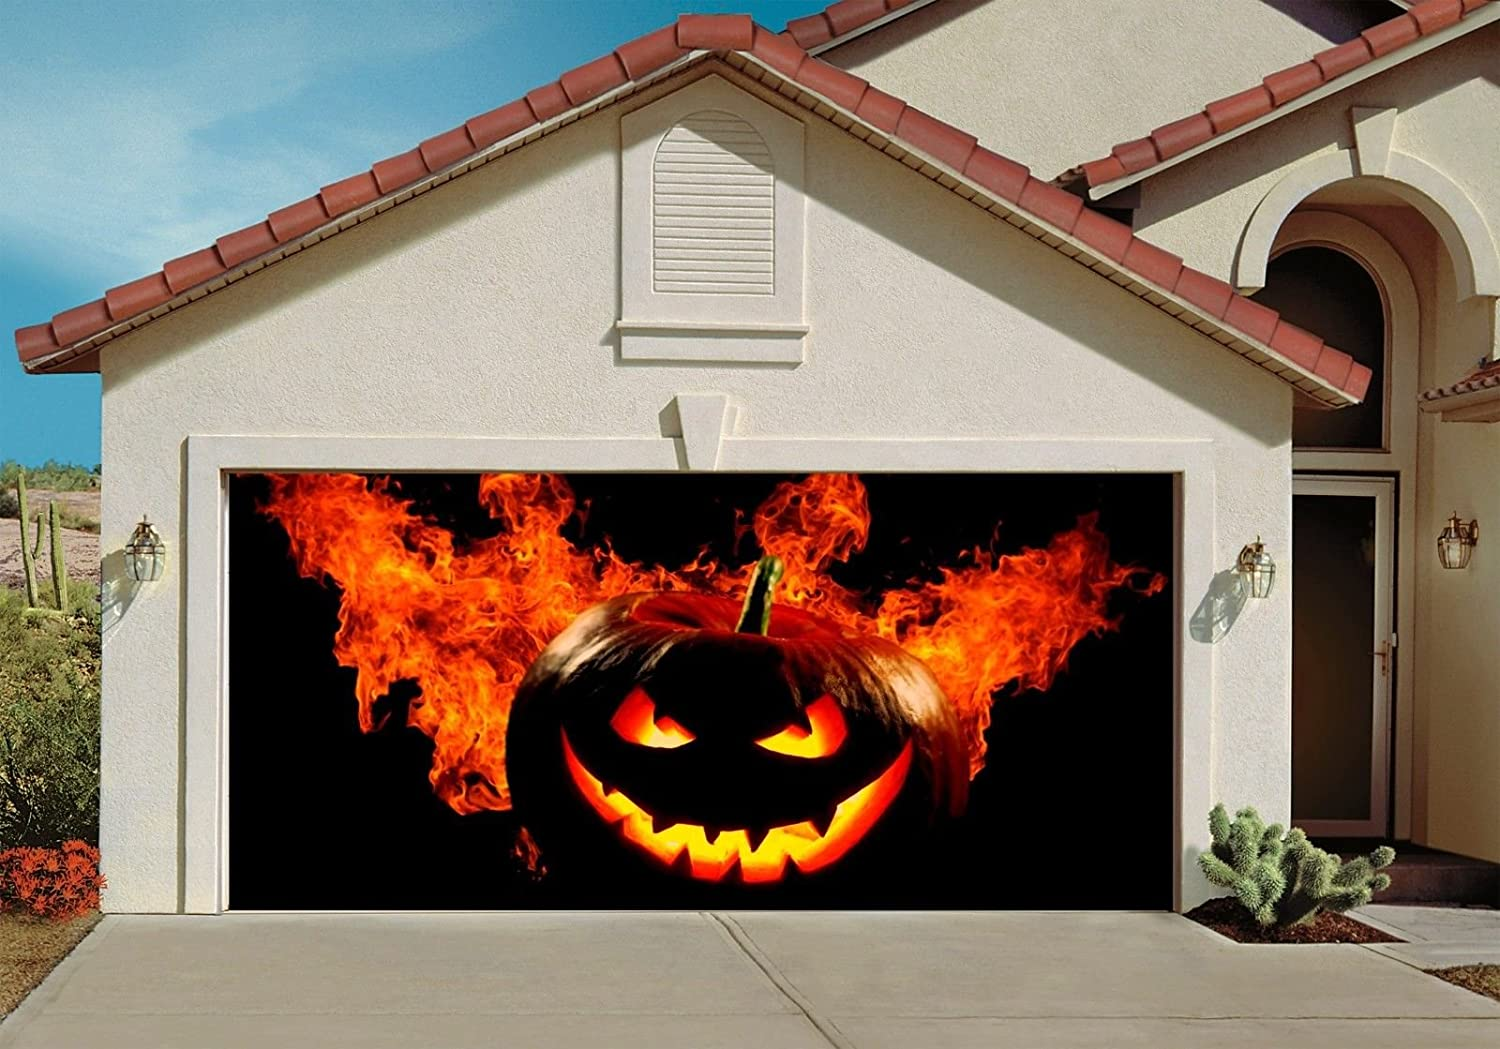 Outdoor Inflatable Halloween Decorations WebNug z